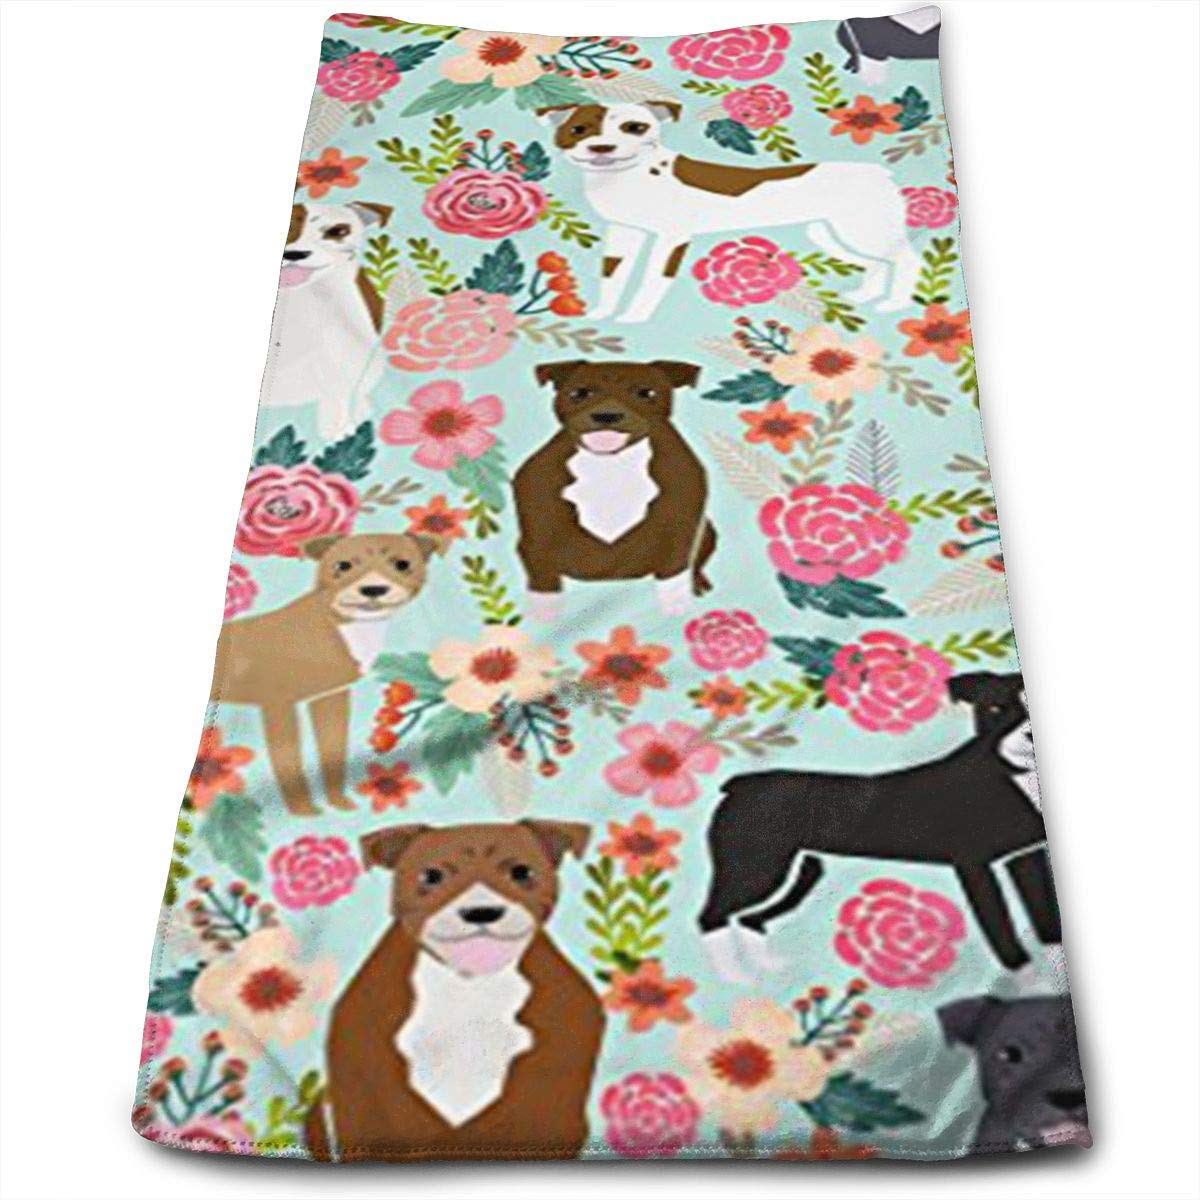 QiFfan22 Pitbull Terriers Cute Dogs Kitchen Towels - Dish Cloth - Machine Washable Cotton Kitchen Dishcloths,Dish Towel & Tea Towels for Drying,Cleaning,Cooking,Baking (12 X 27.5 Inch)